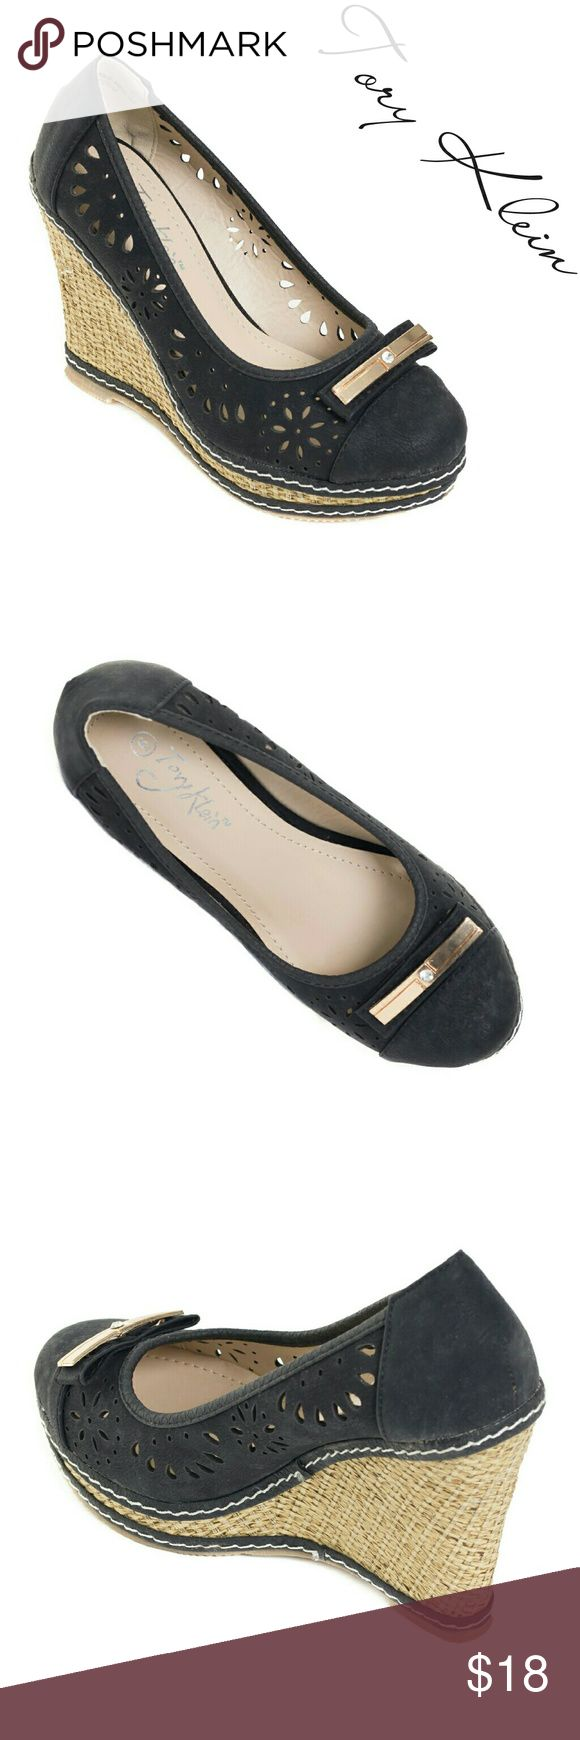 "Women Wedge Espadrilles with Bow, HW-1677, Black Brand new Tory K woman perforated black espadrilles in PU leather with a flat bow buckle in the front. Platform measures about 4"". Cushioned sole adds to the comfort. Very festive summer shoe! A true statement in ladies shoes fashion! Tory K Shoes Espadrilles"